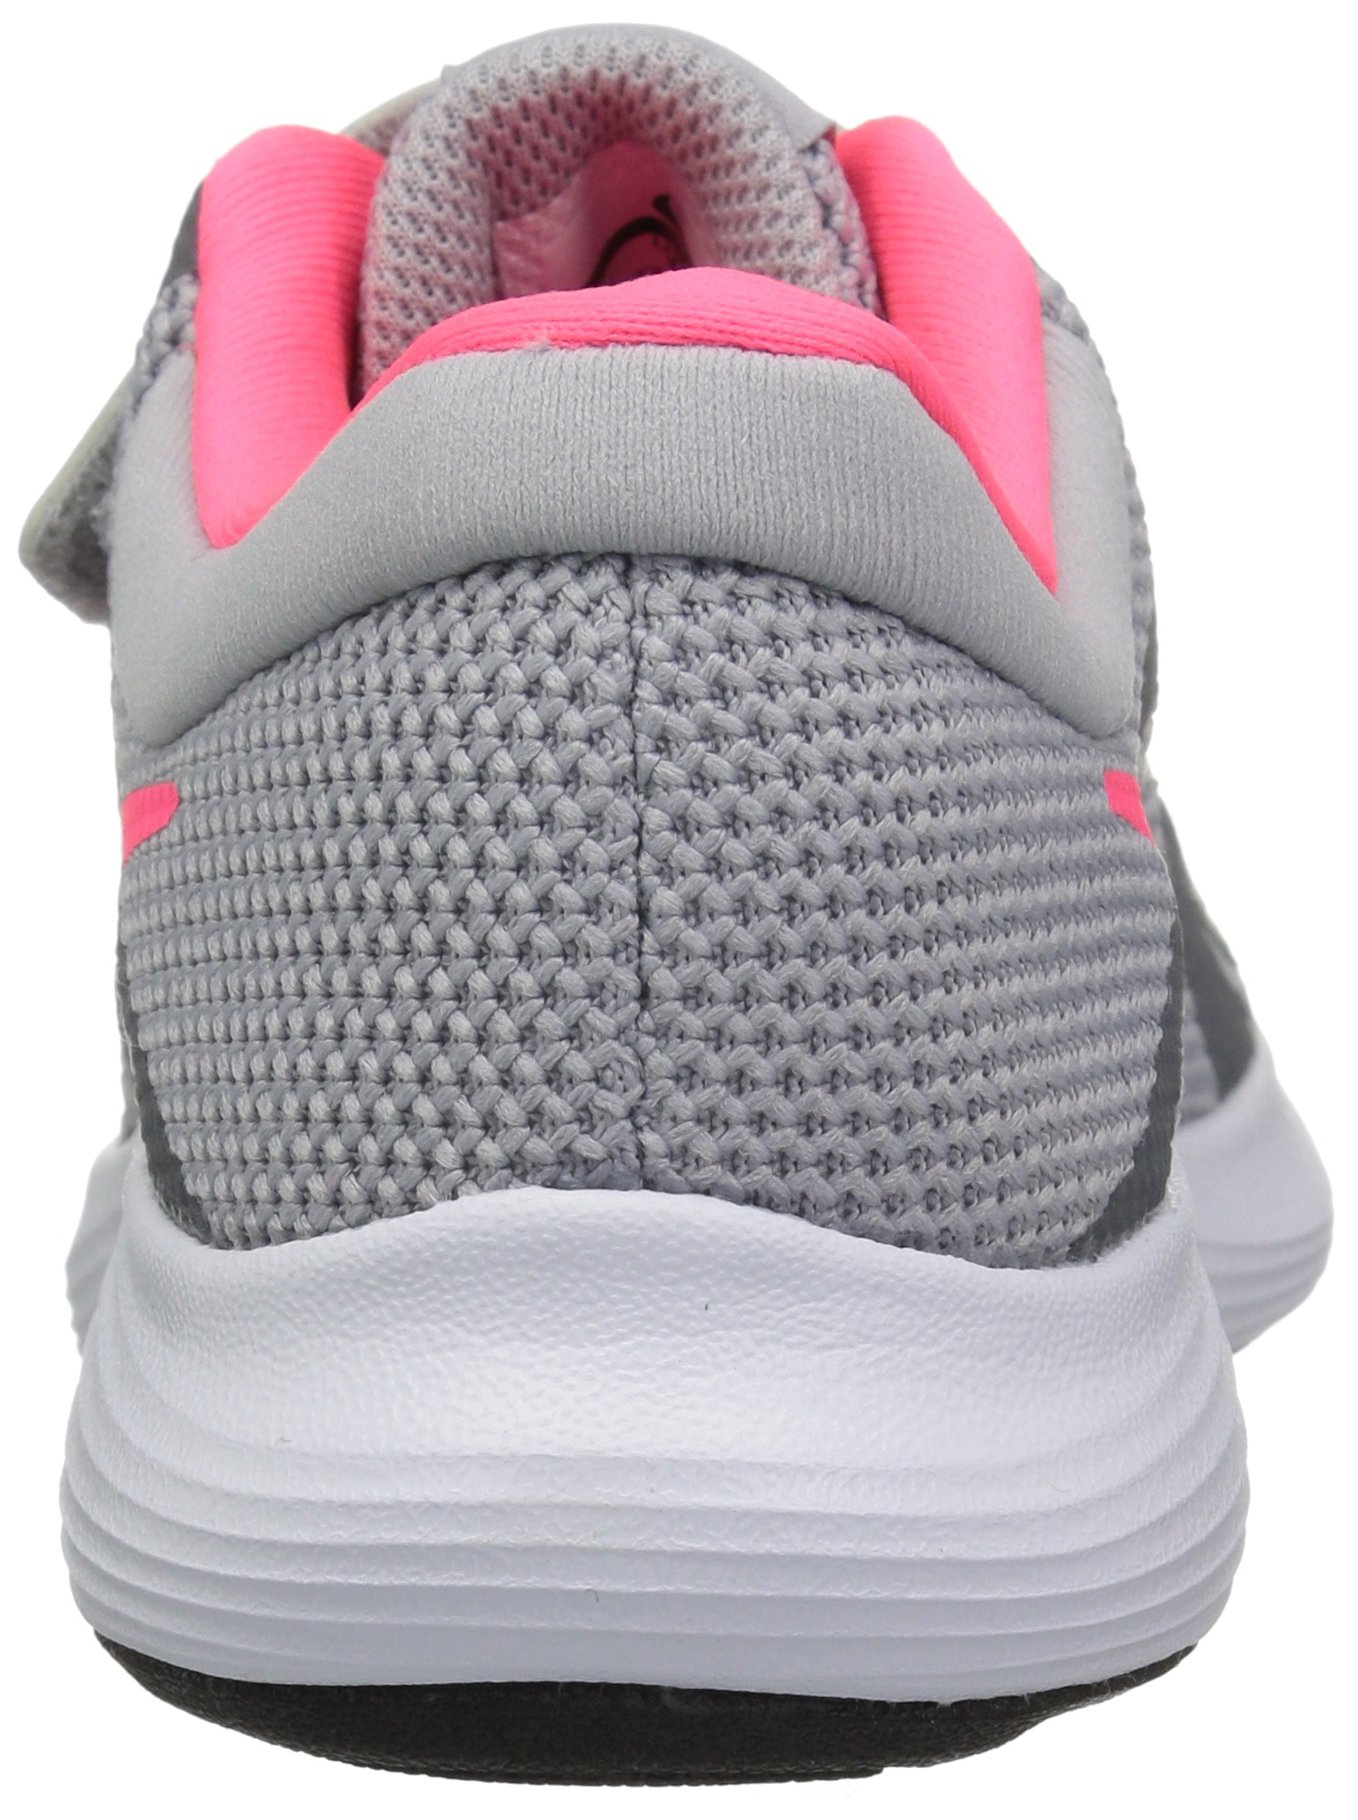 Nike Girls' Revolution 4 (PSV) Running Shoe, Wolf Racer Pink-Cool Grey-White, 3Y Child US Little Kid by Nike (Image #2)